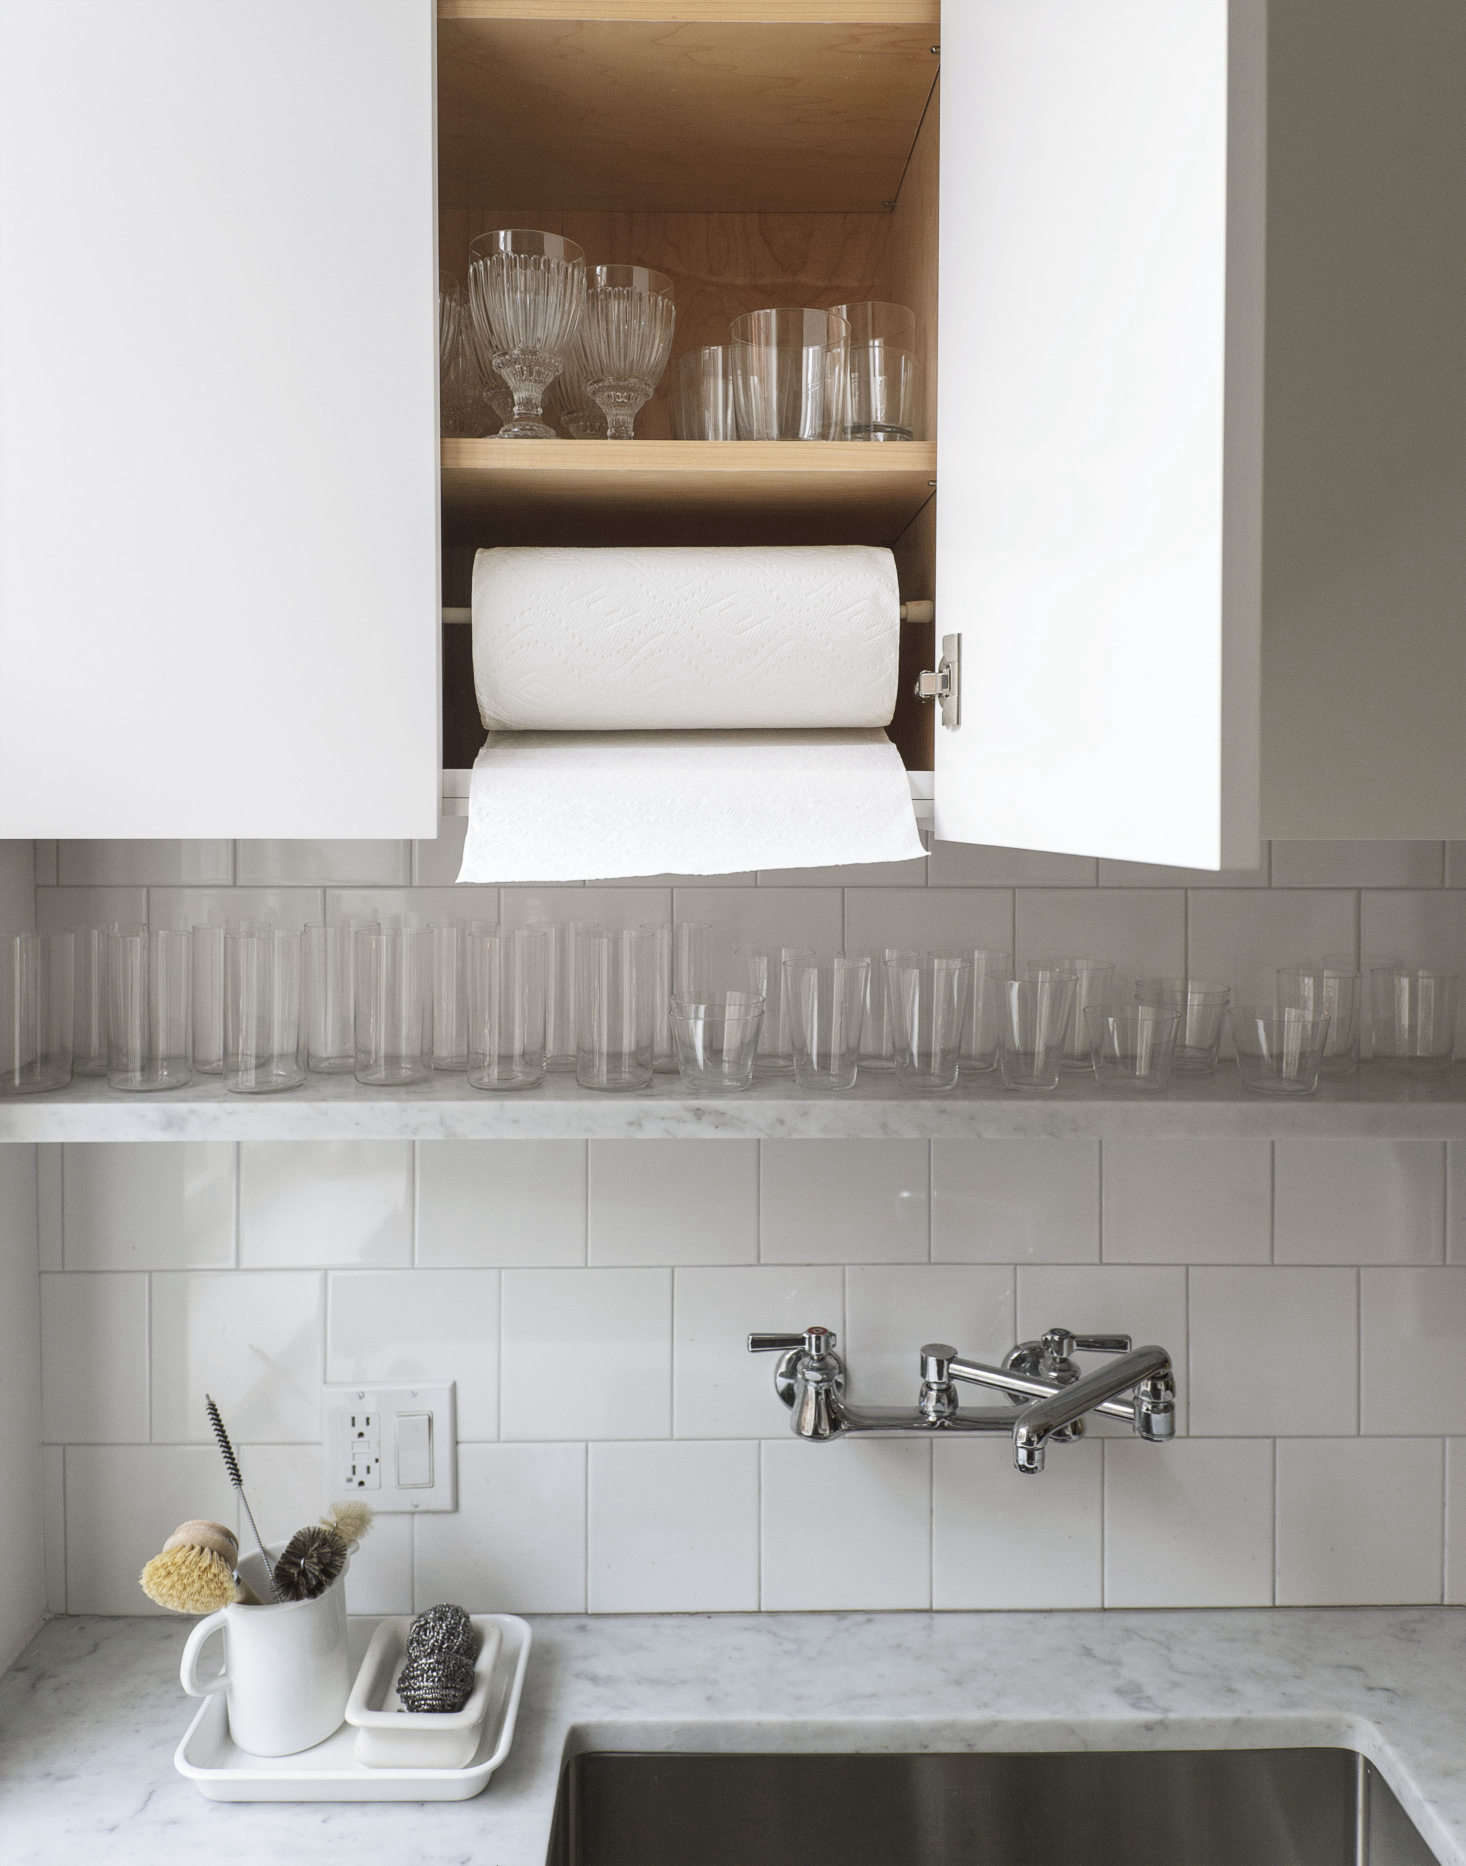 The wall-mounted Chicago Kitchen Faucet with articulated spout is a model we've used before; it's well priced, American made, and incredibly durable. We installed a dowel in the cabinet above the sink to hold paper towels. (See Aha! Hack: Tension Rod as Paper Towel Holder.)